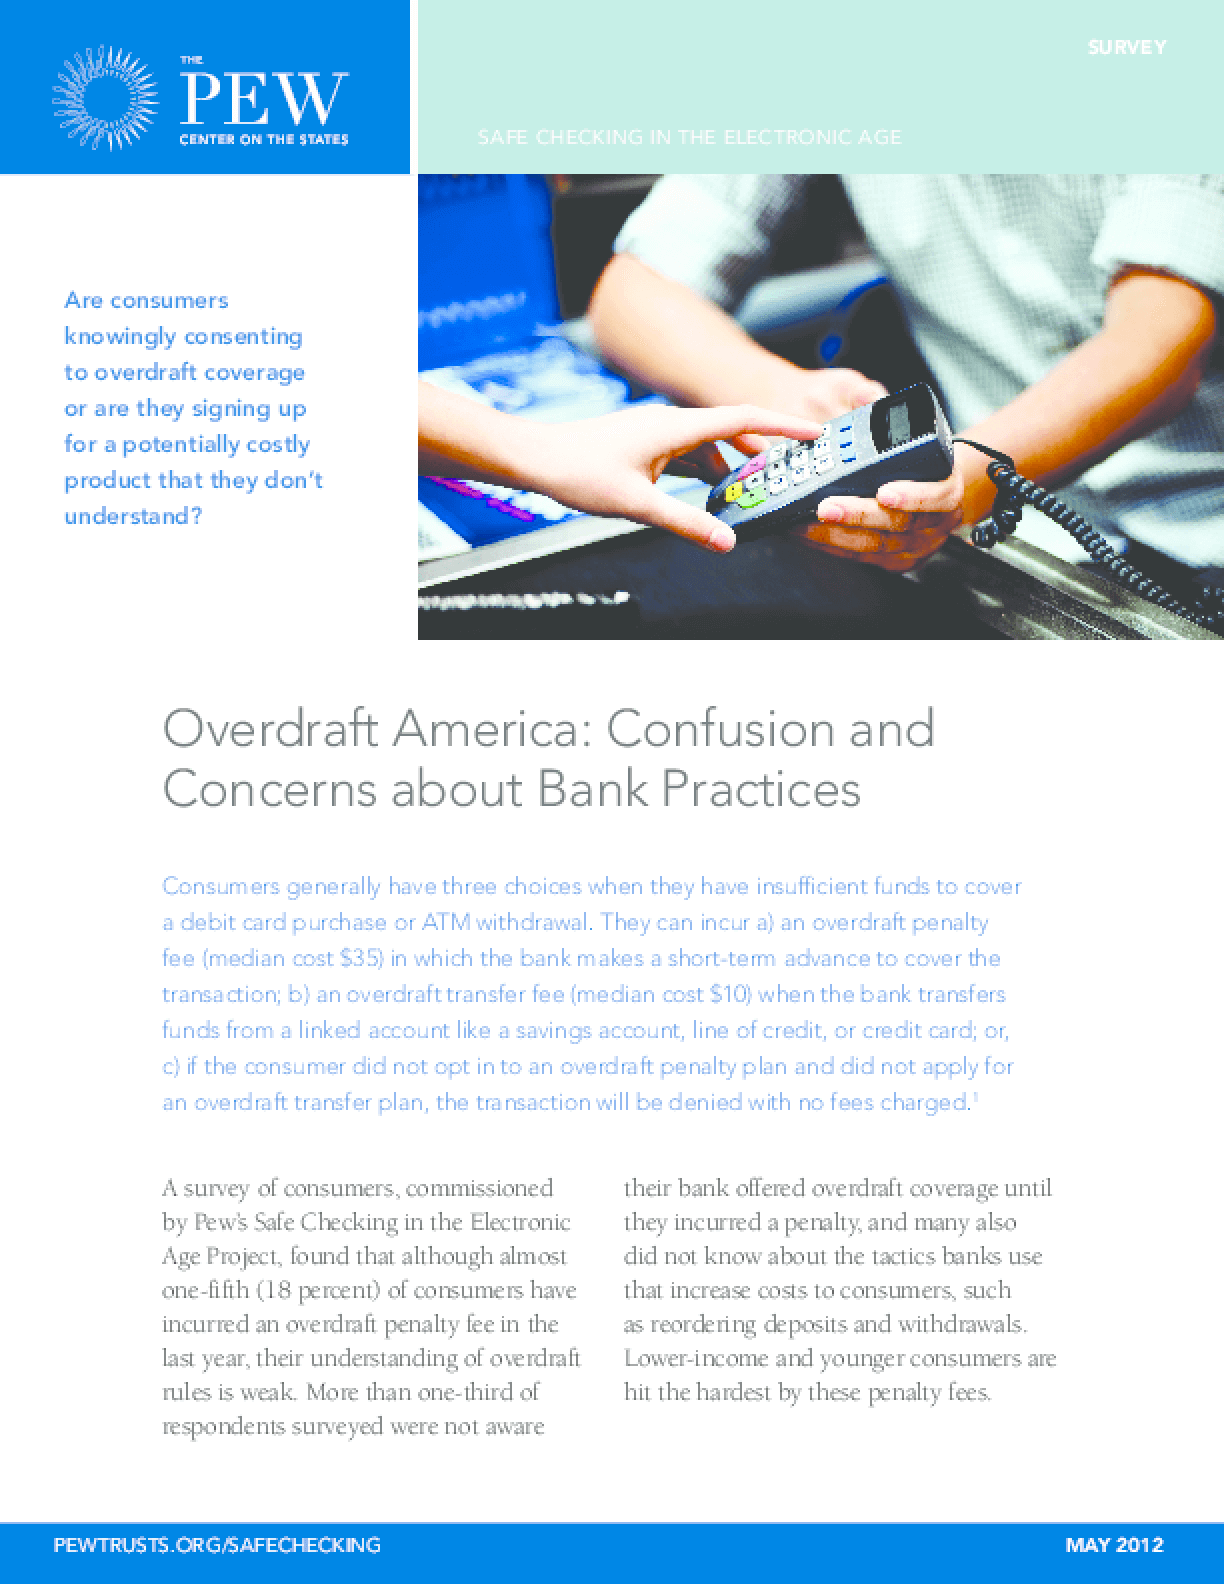 Overdraft America: Confusion and Concerns About Bank Practices